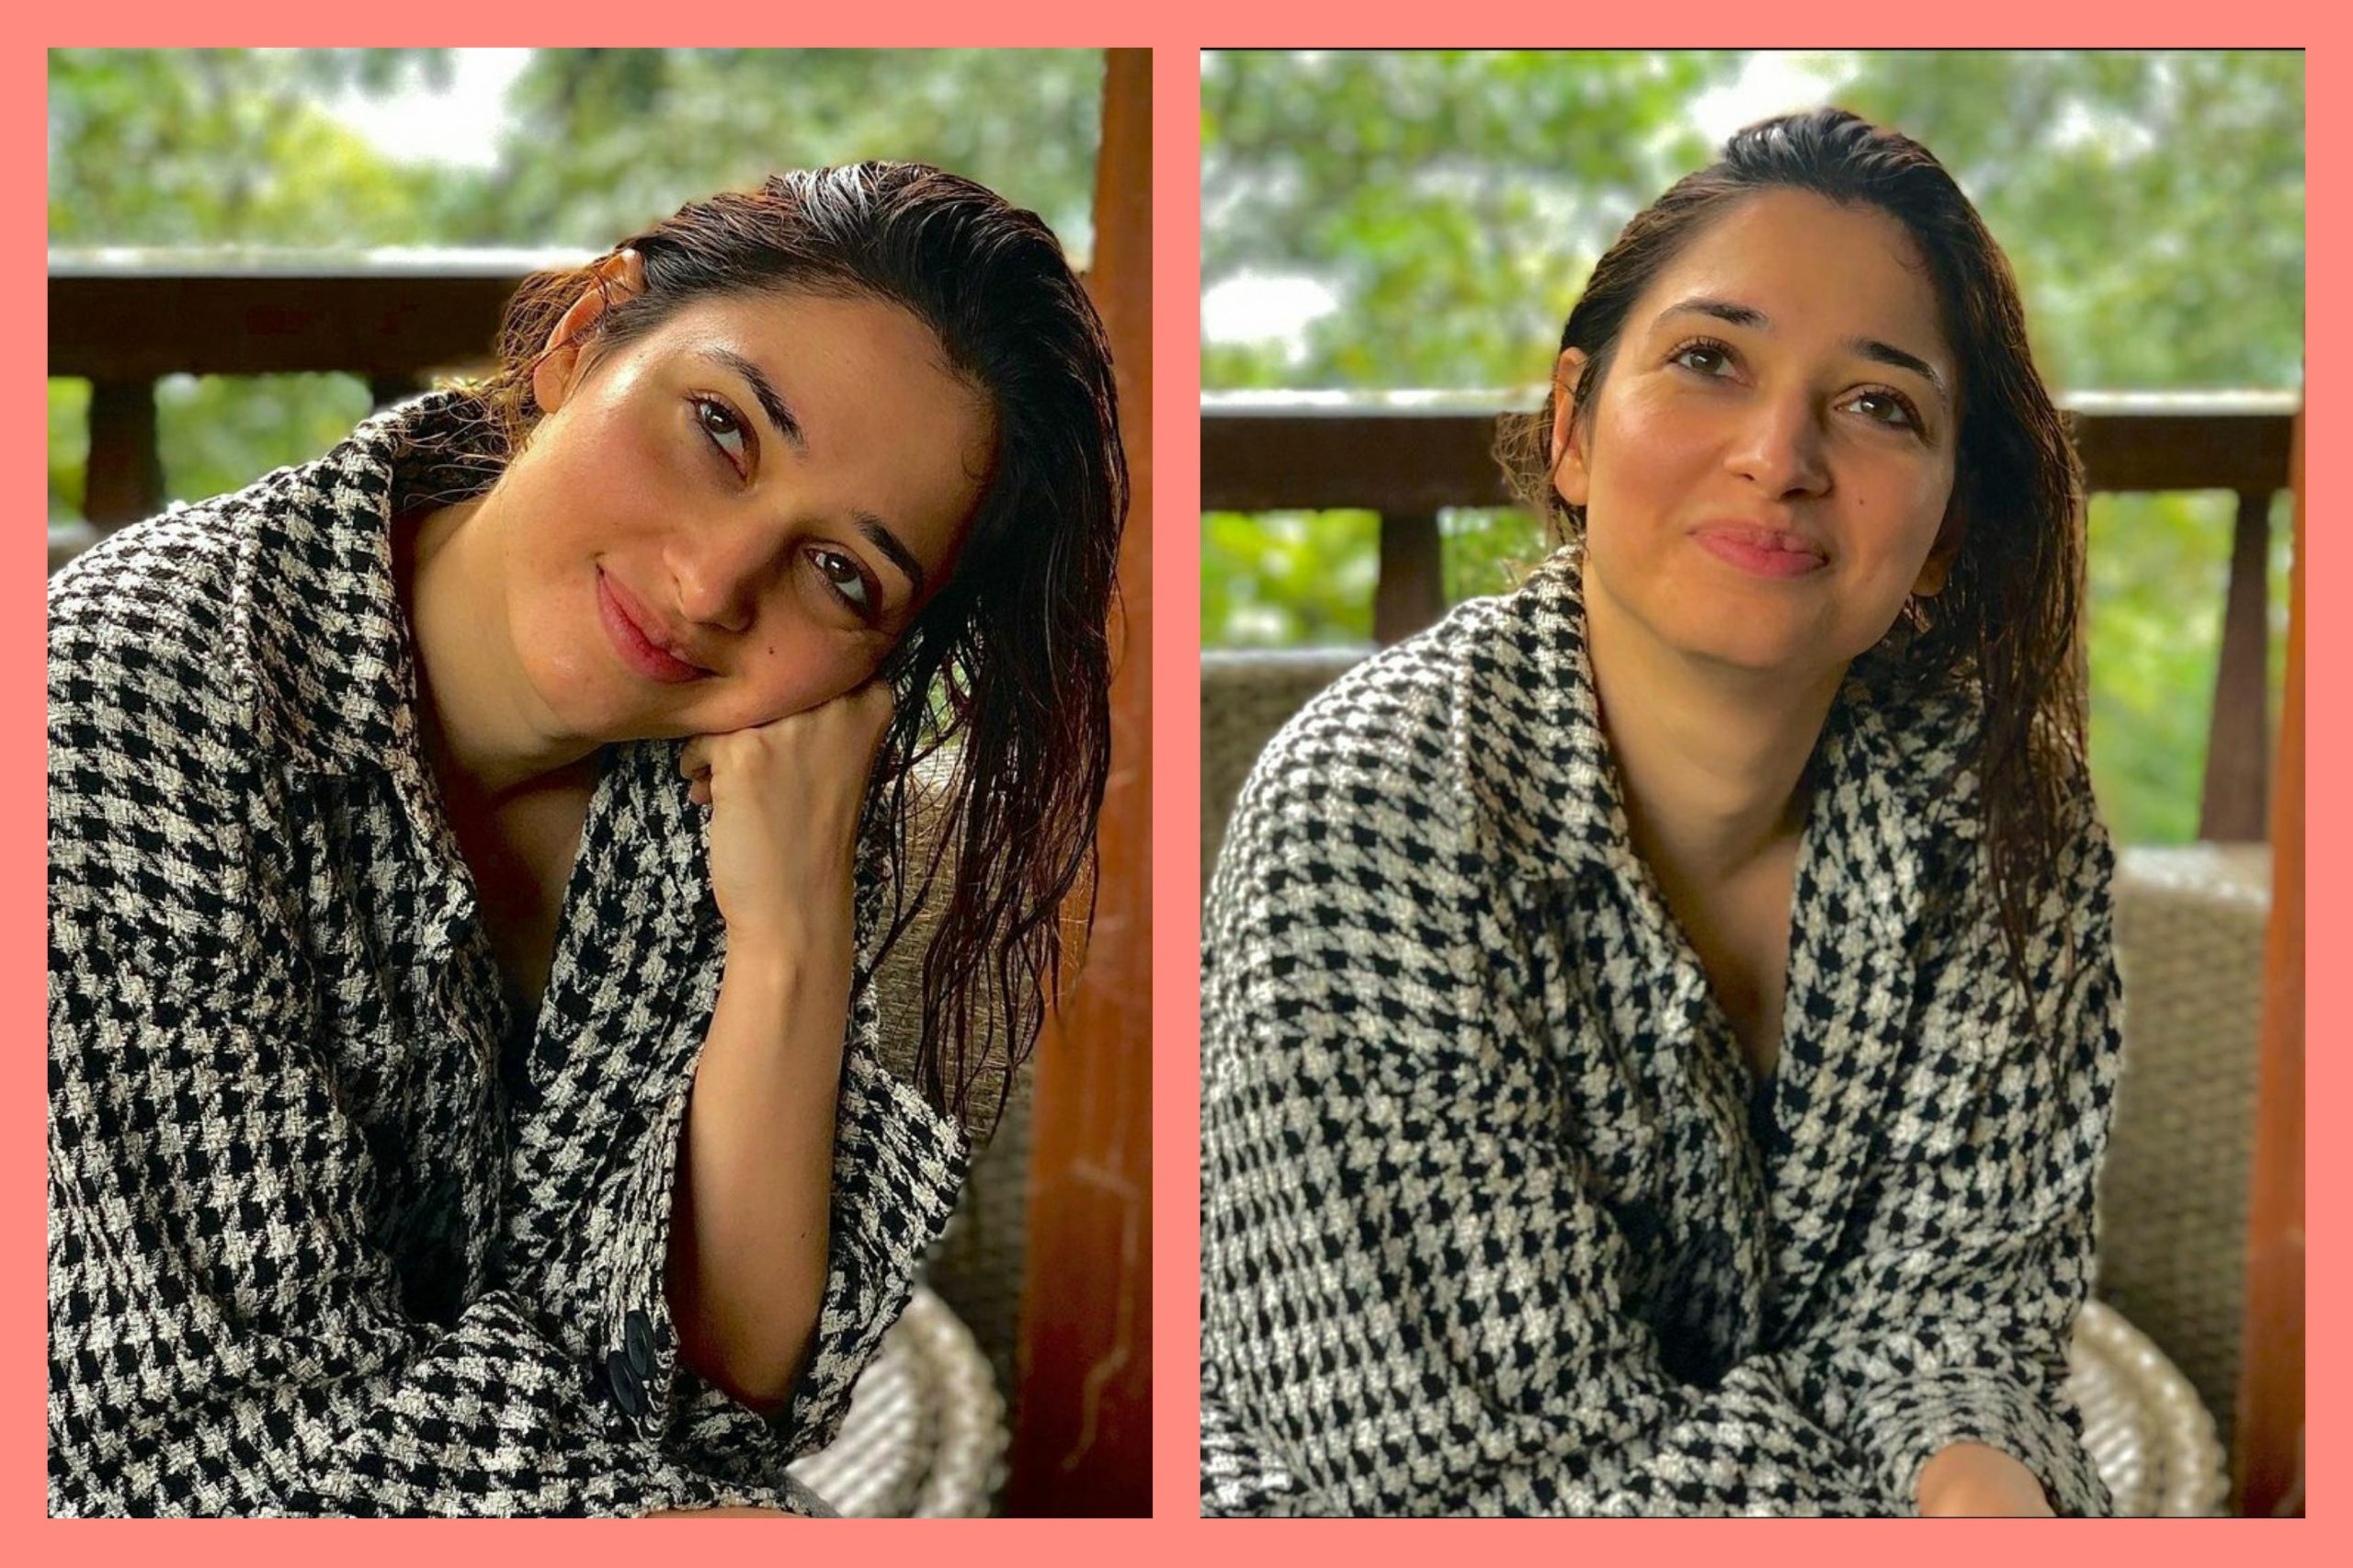 Tamannaah Bhatia spilled the beans on her 'serious health issue'